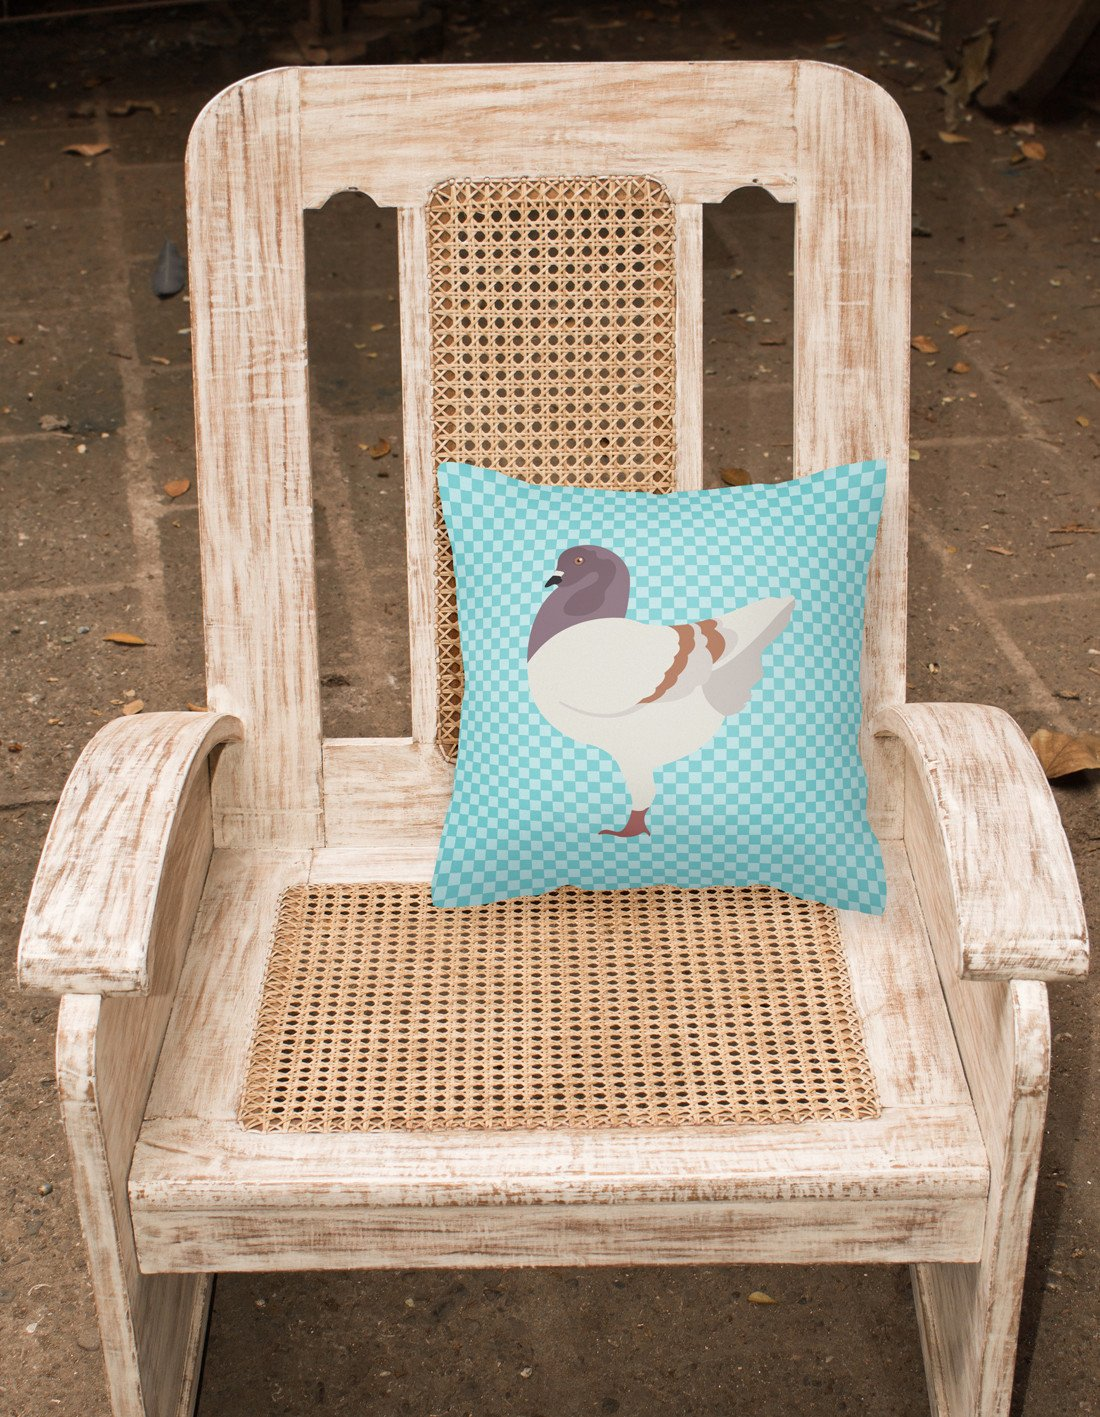 German Modena Pigeon Blue Check Fabric Decorative Pillow BB8123PW1818 by Caroline's Treasures